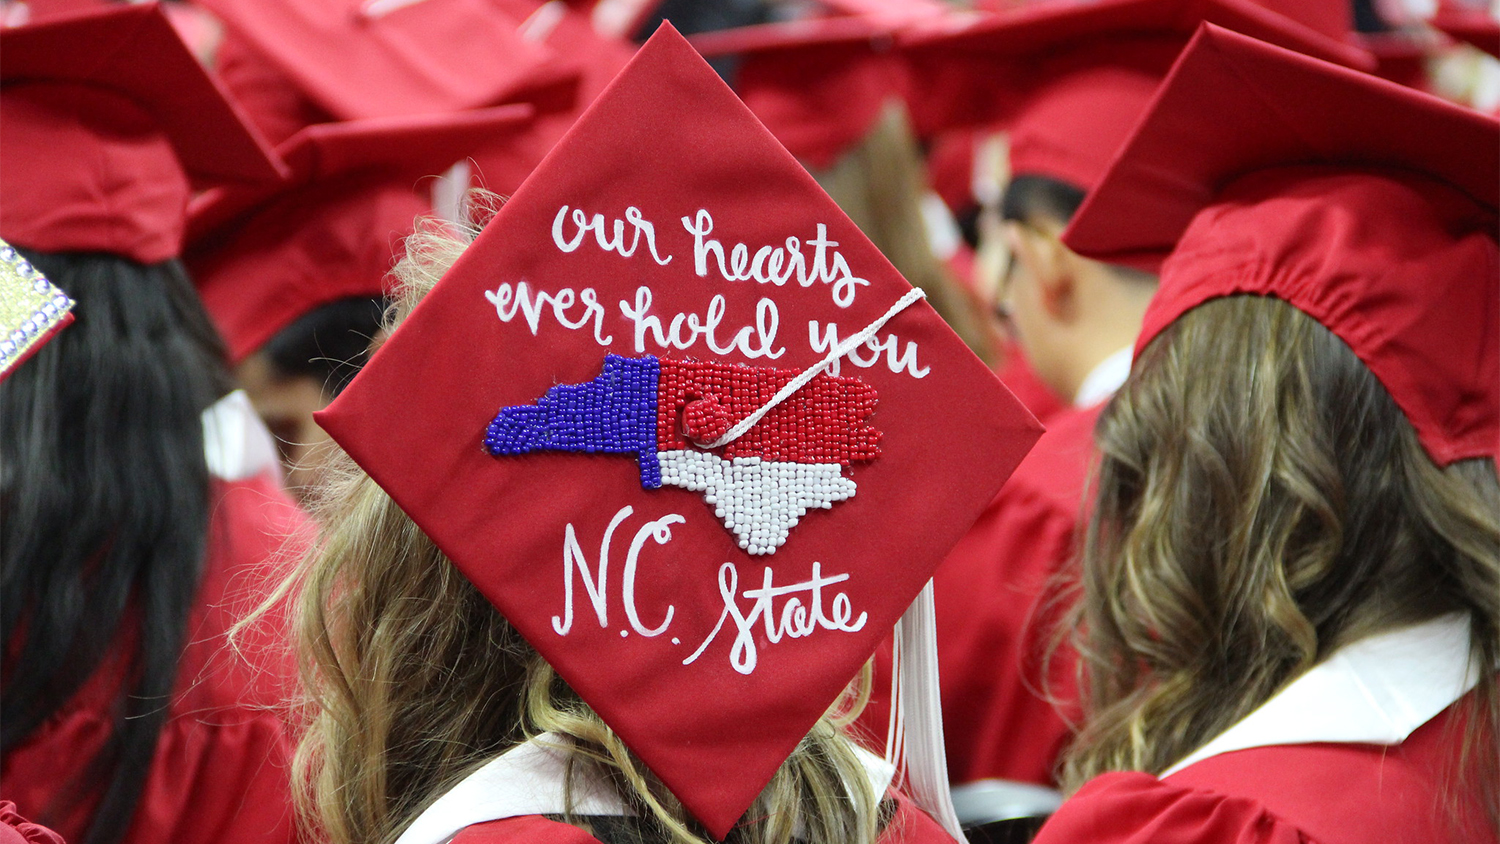 """The top of a graduate's hat that reads """"Our hearts ever hold you, NC State"""""""